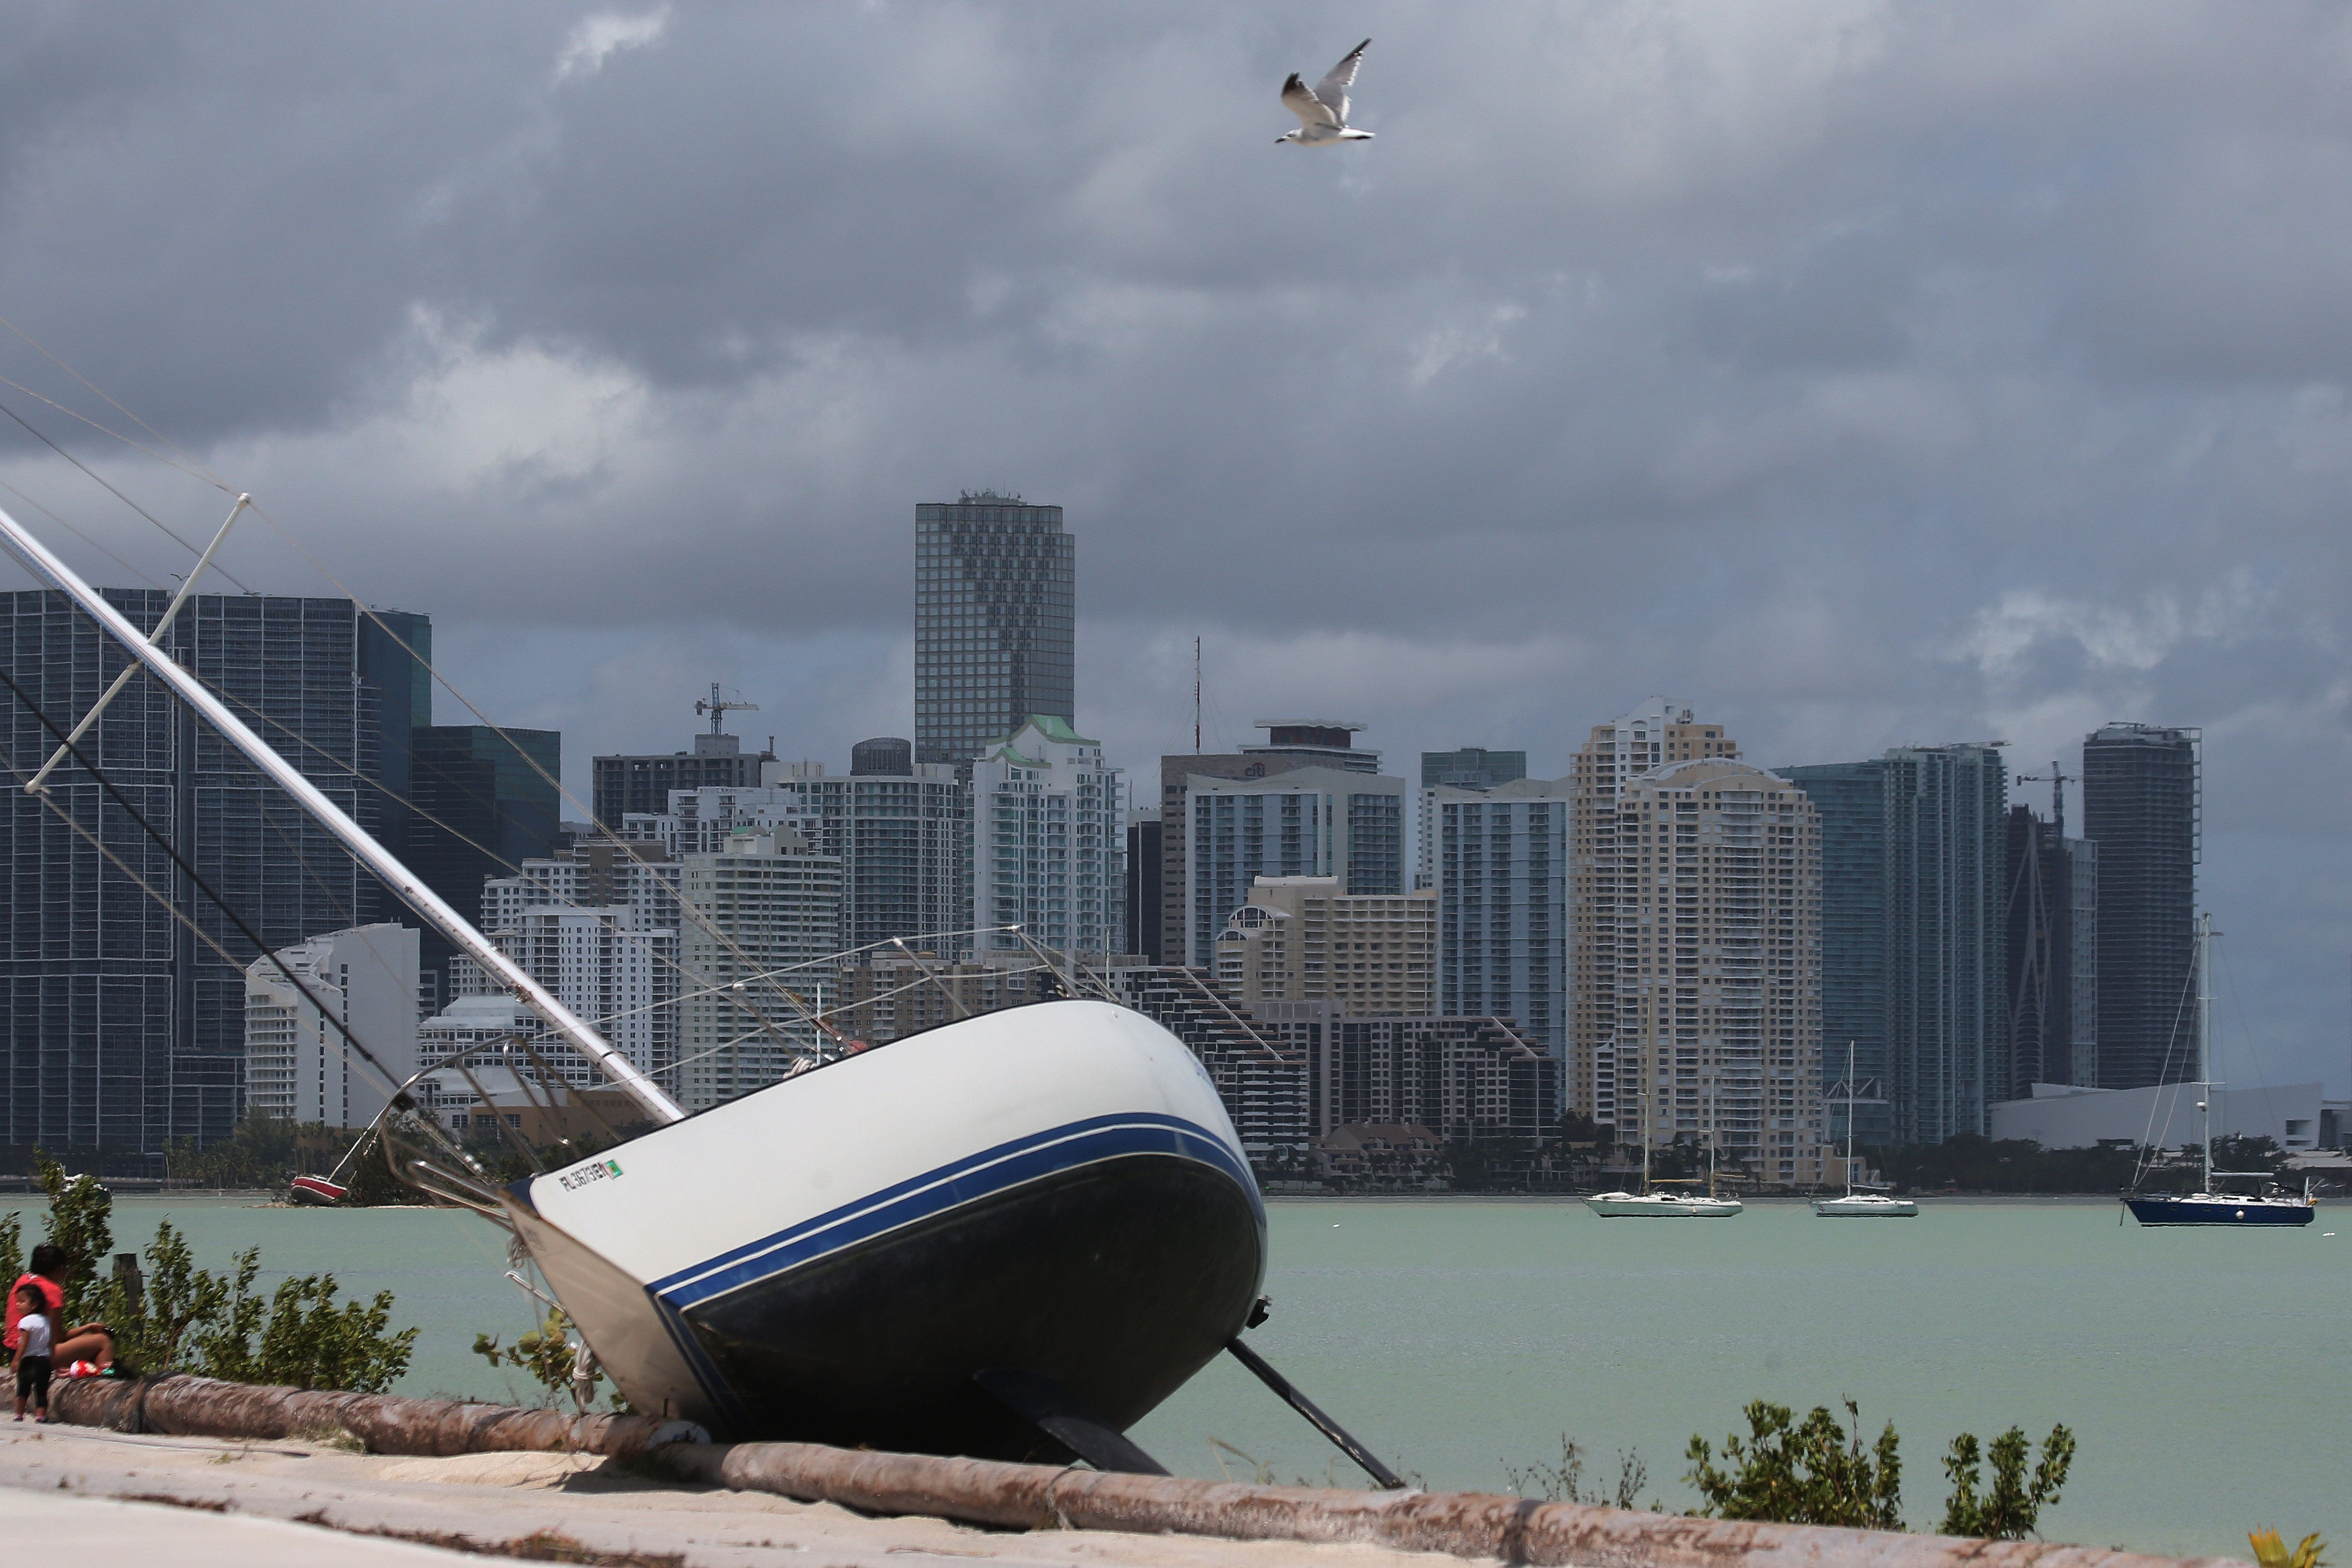 Miami skyline is seen above a boat that went ashore after the passing of Hurricane Irma in Key Biscayne, Florida, U.S., September 11, 2017. REUTERS/Carlo Allegri